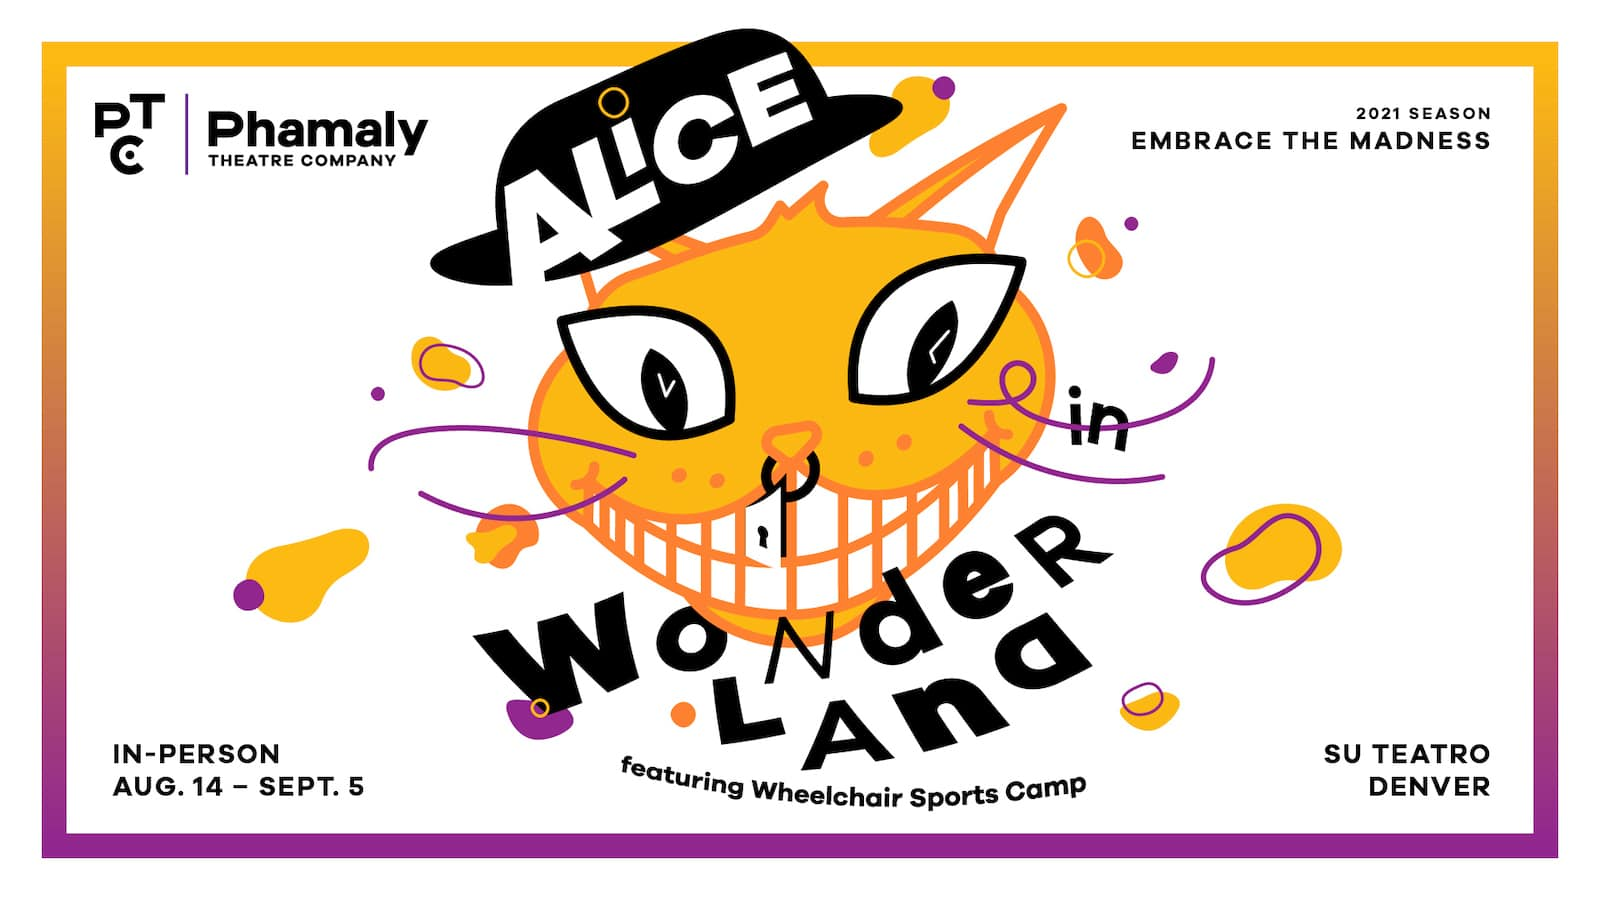 Image of the Phamaly Theatre Company Alice in Wonderland flyer